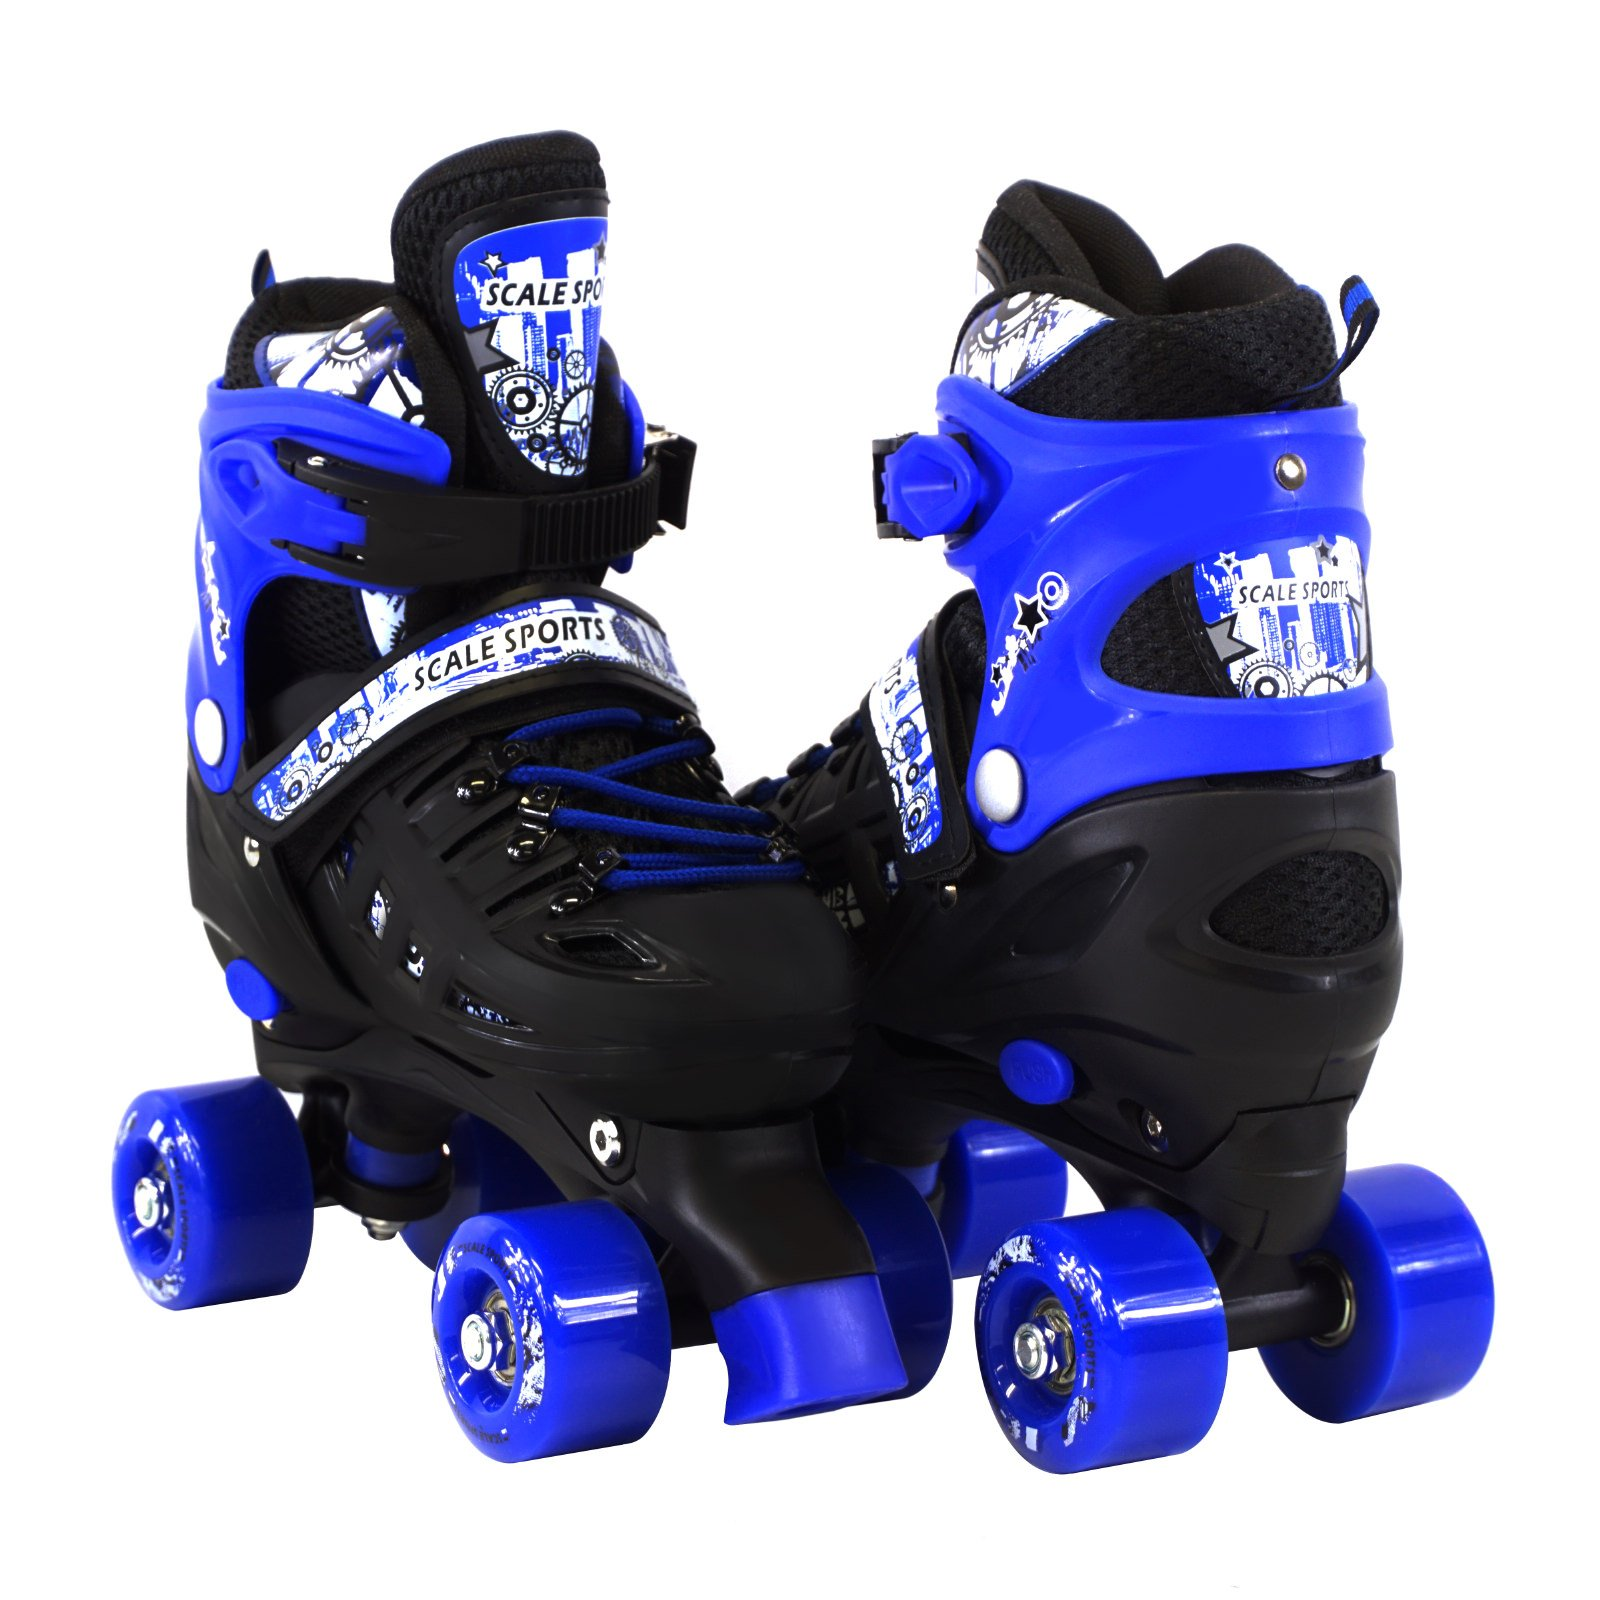 Scale Sports Adjustable Blue Quad Roller Skates For Kids Large Sizes